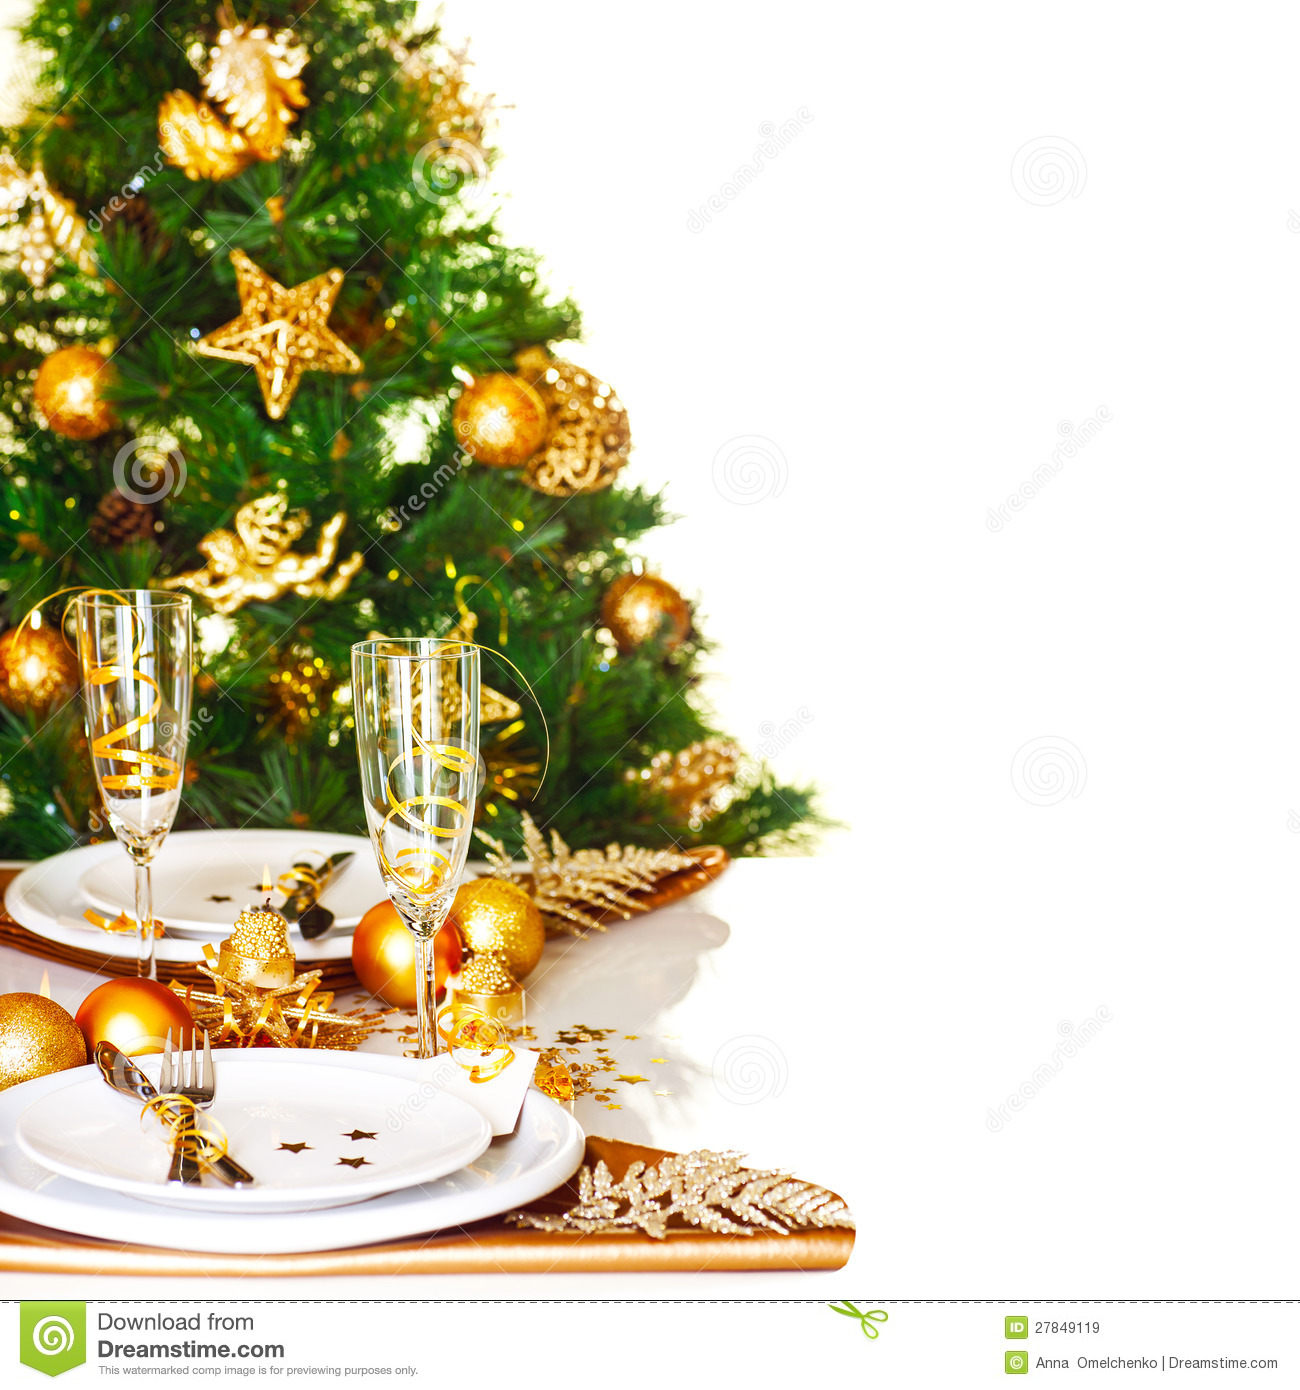 clipart christmas dinner pictures - photo #12